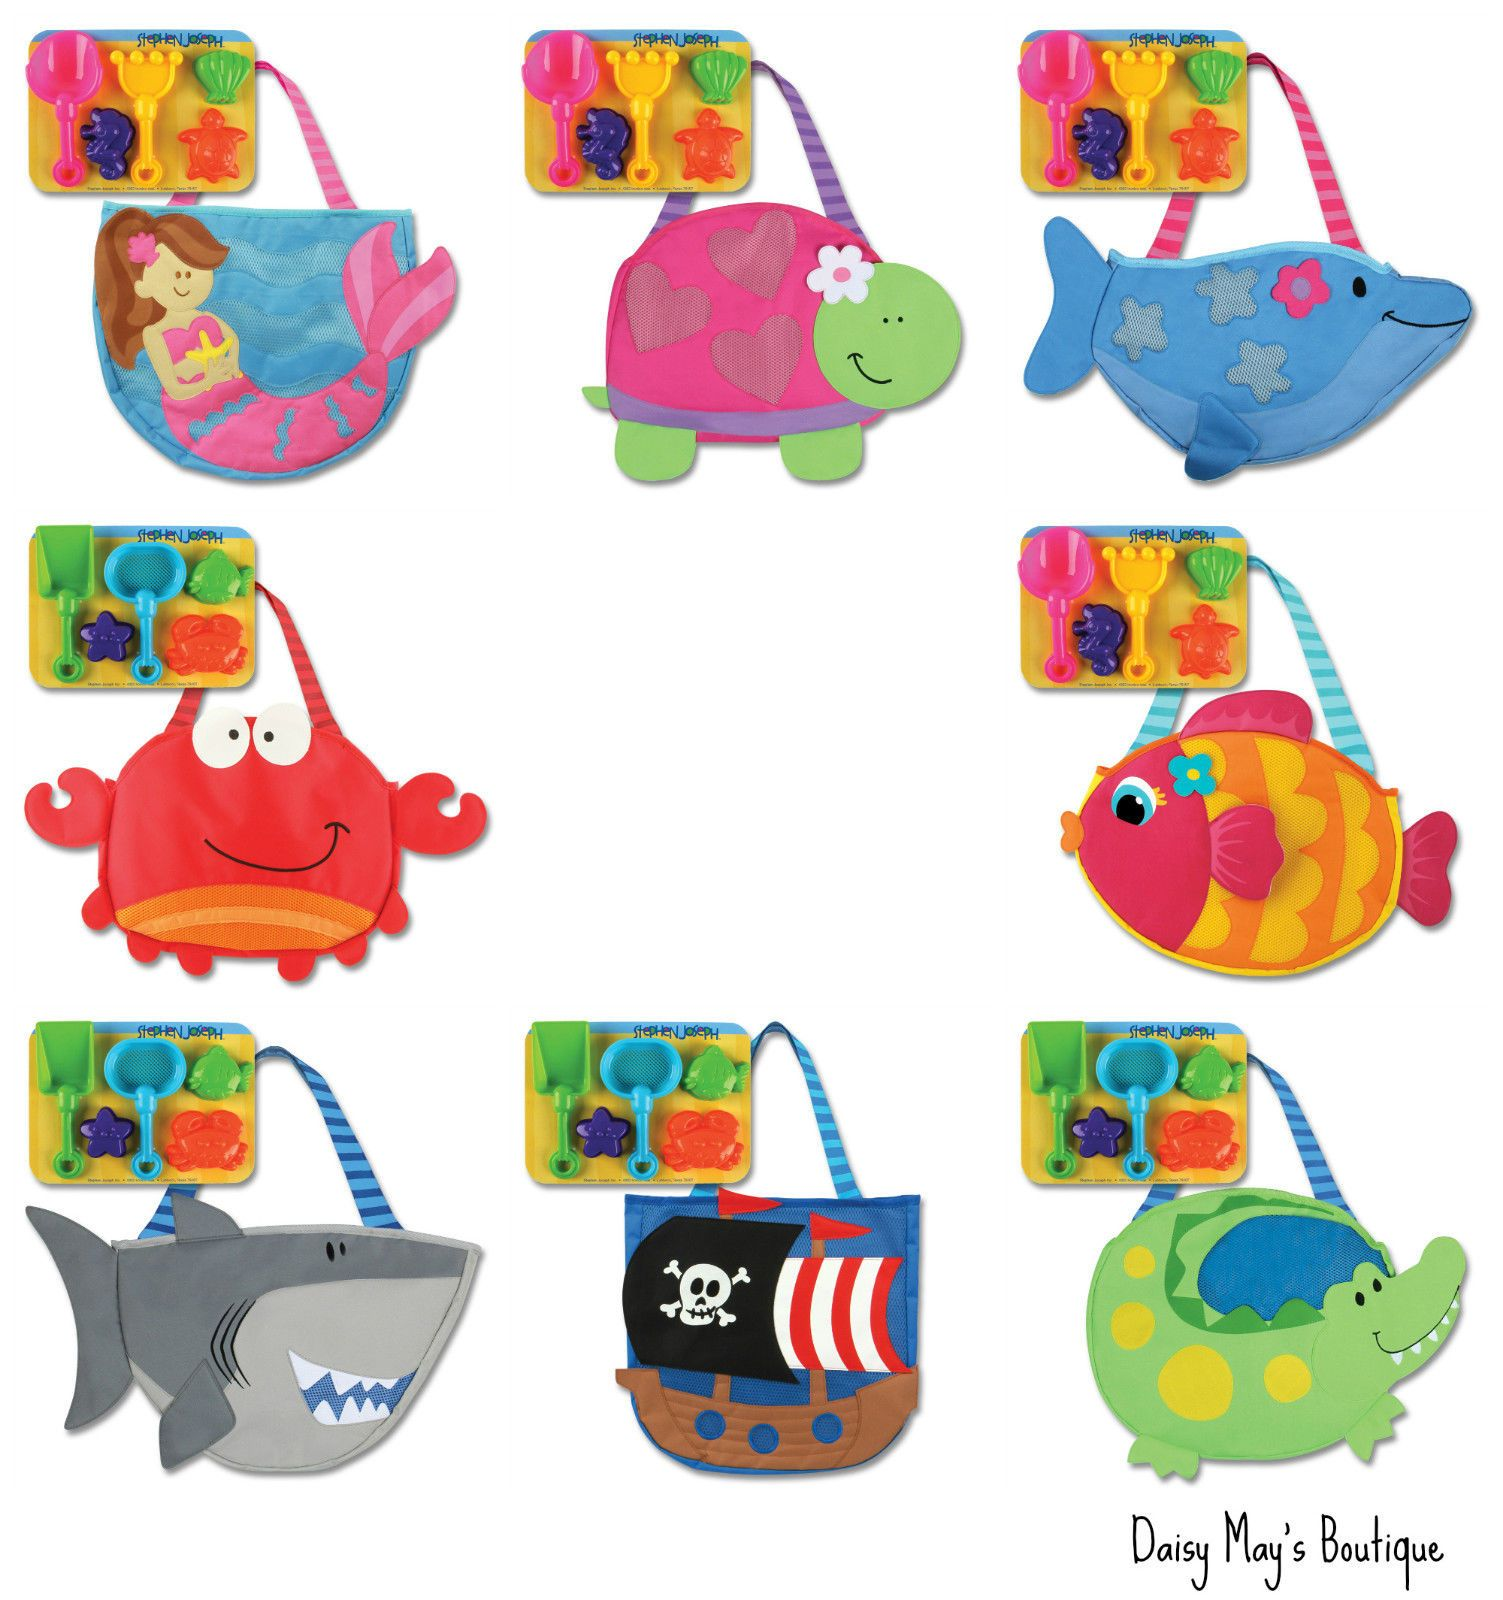 Details about Stephen Joseph Kids Beach Totes with Sand Toys